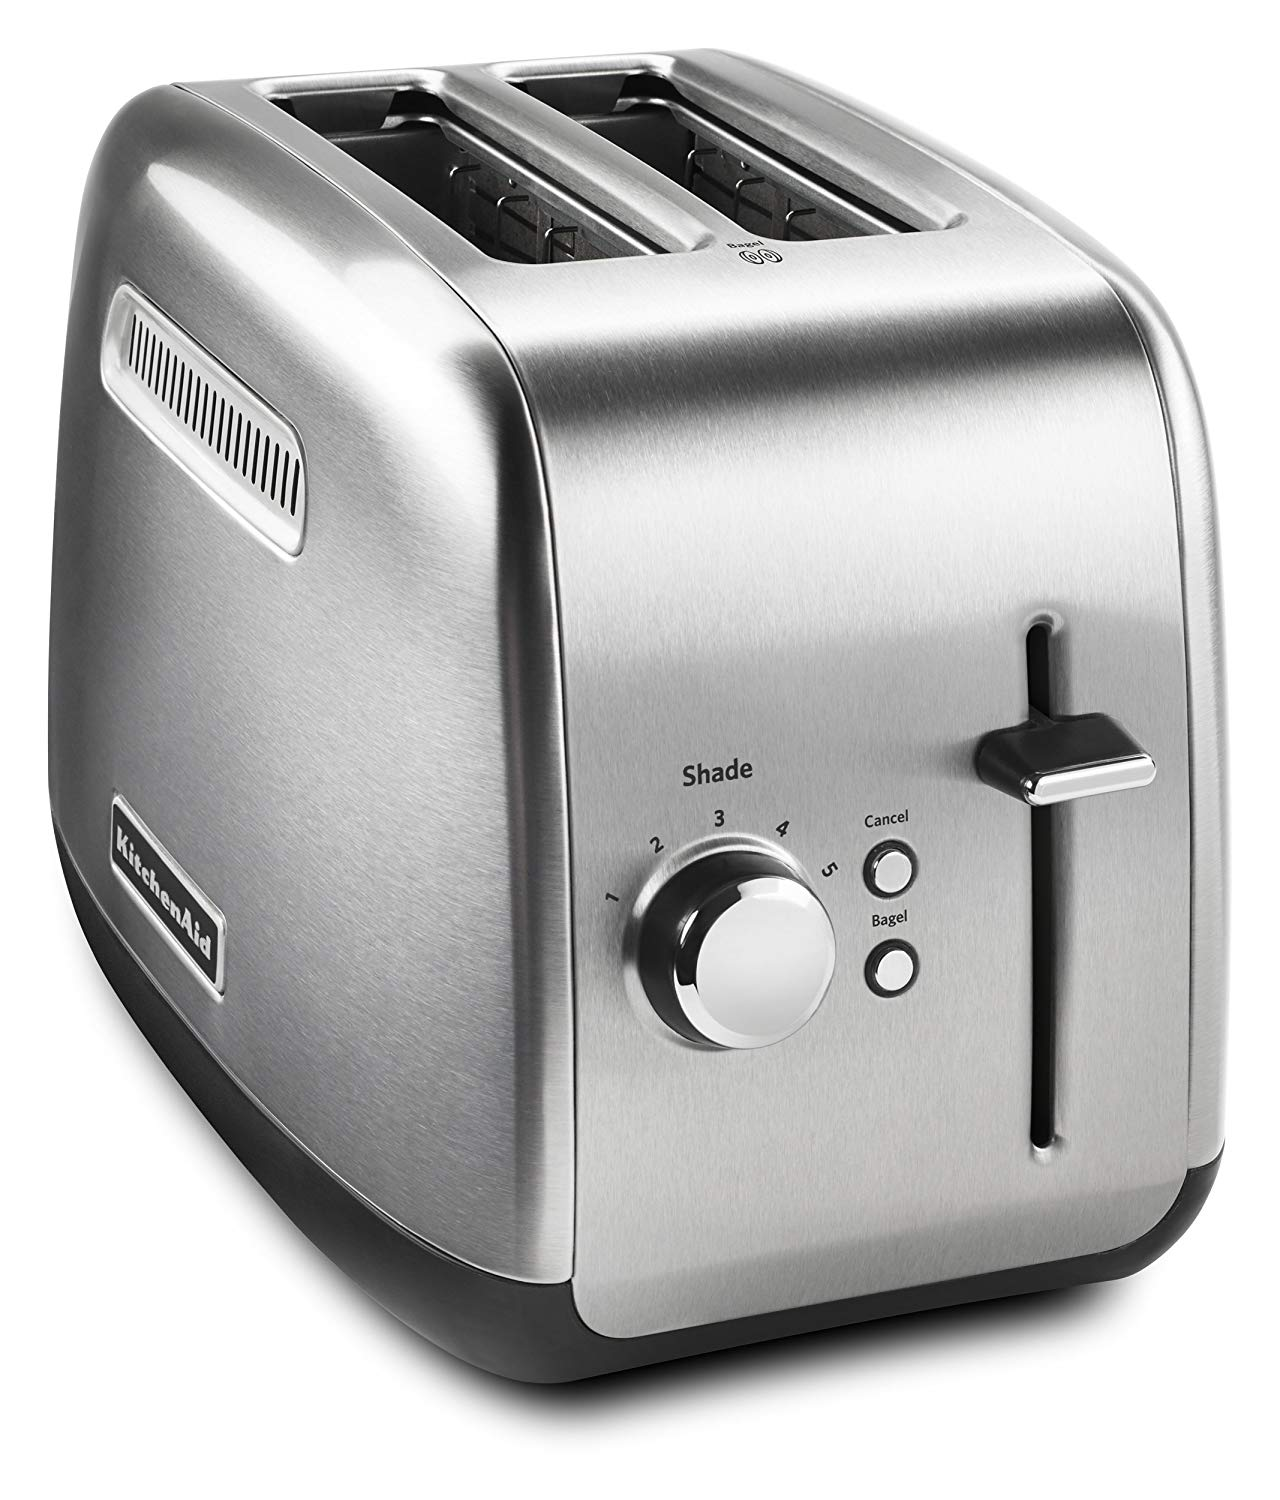 2 SLICE METAL TOASTER - MANUAL LIFT KMT2115SX